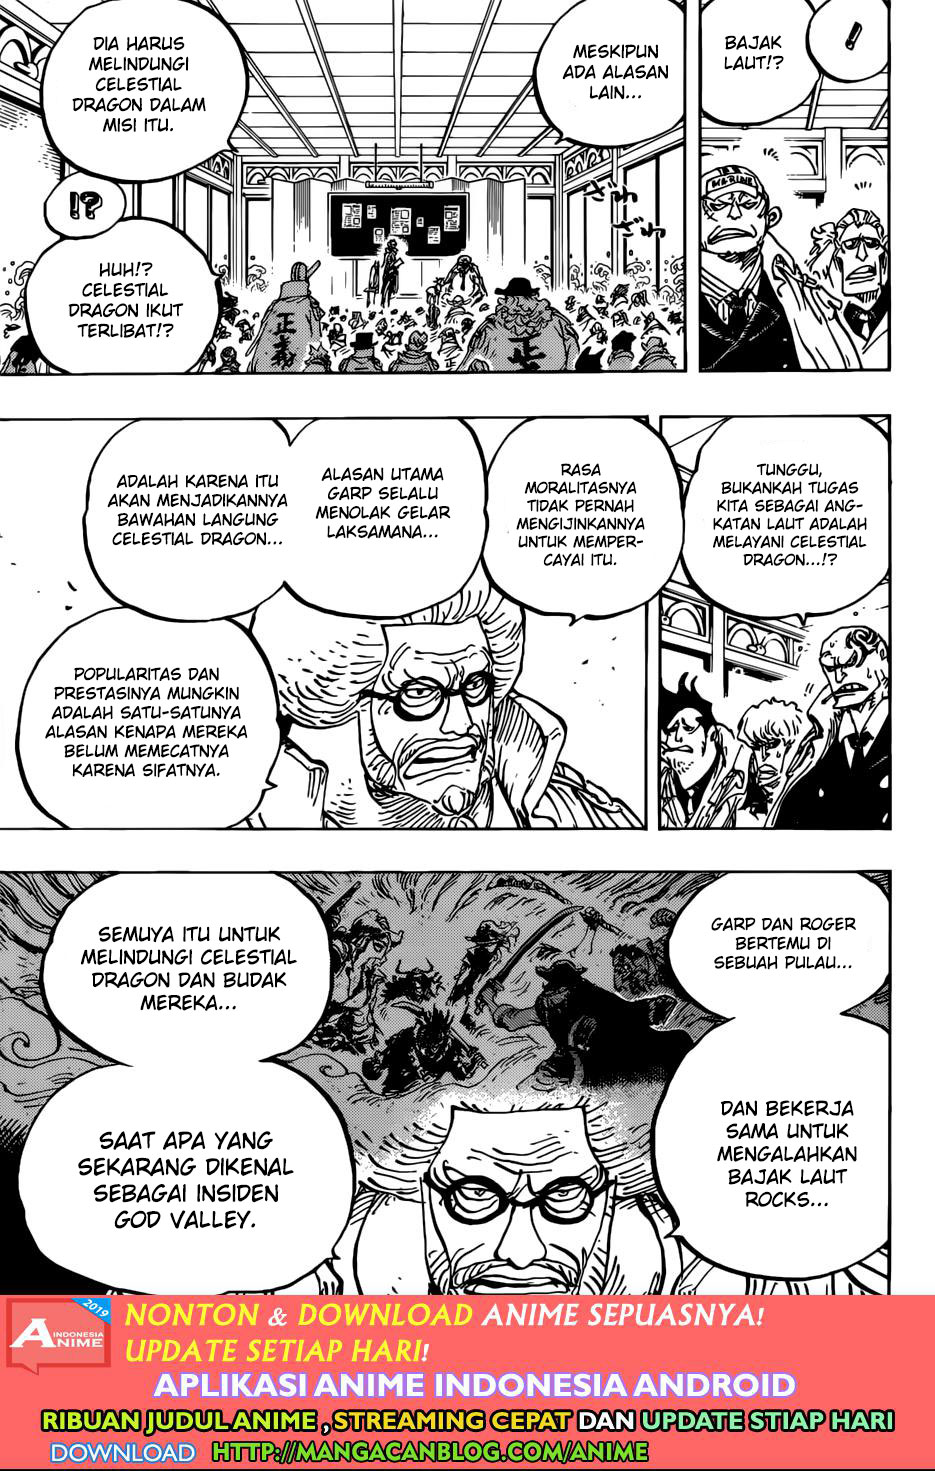 Komik One Piece 957 : komik, piece, Piece, Chapter